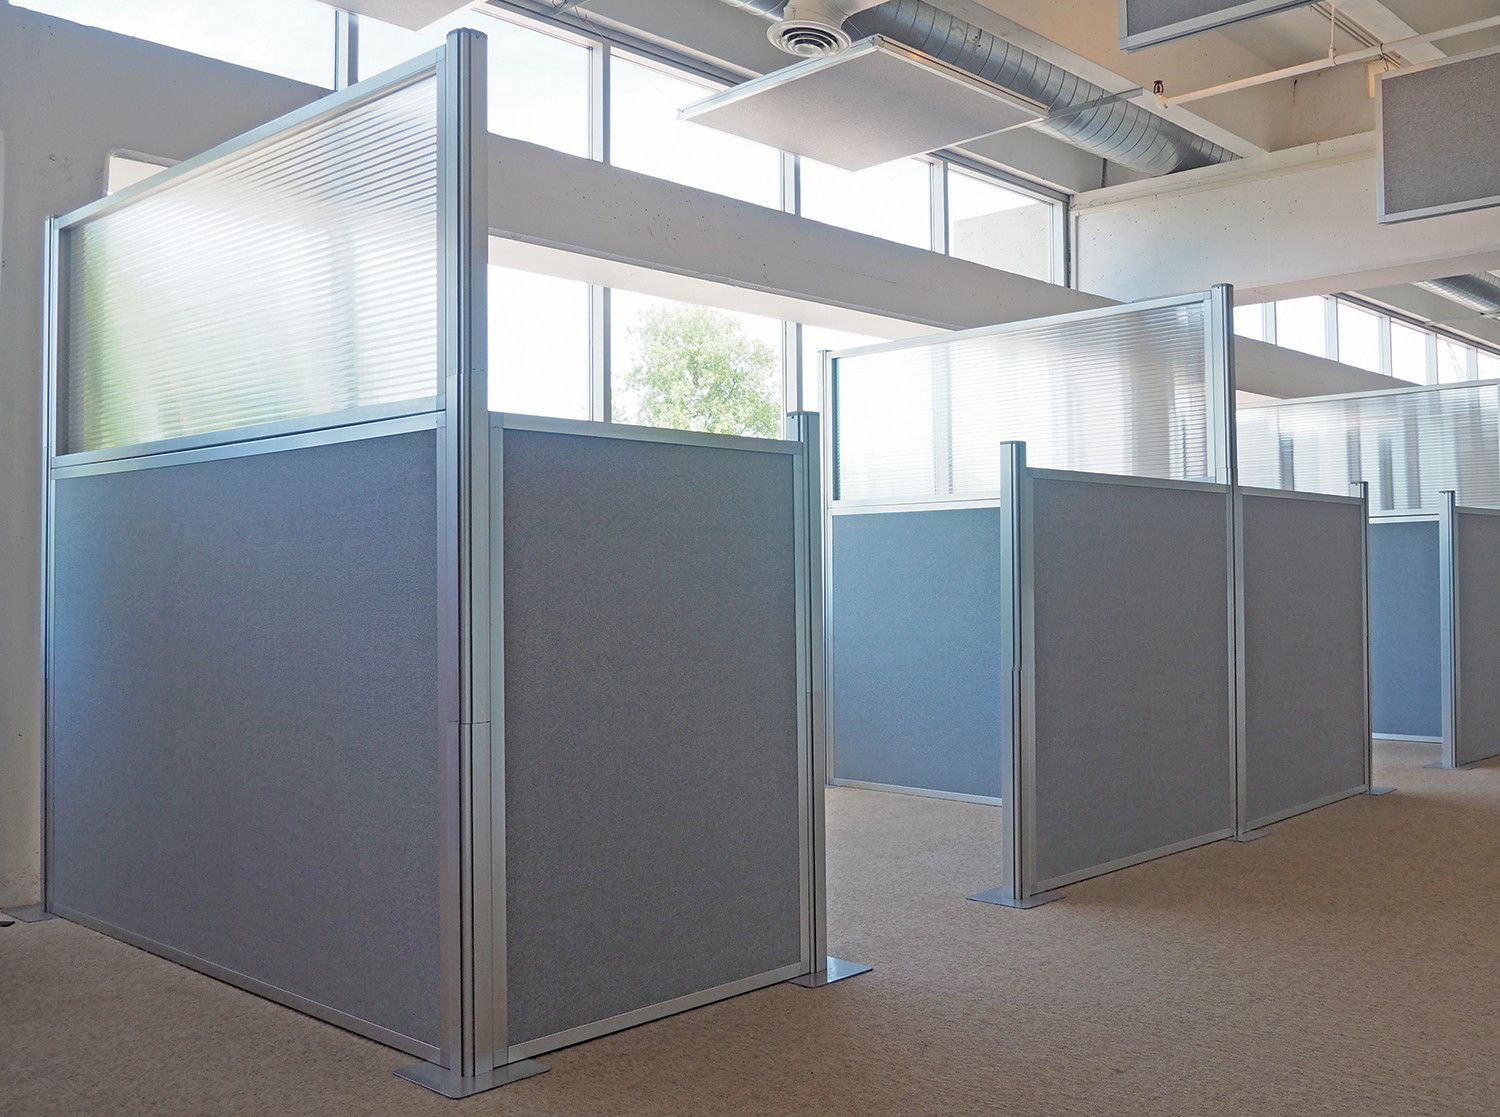 office cubicle organization. The Hush Panels (DIY Cubicle Partitions) Are A Wise Choice To Grow With Your Organization. Office Organization M